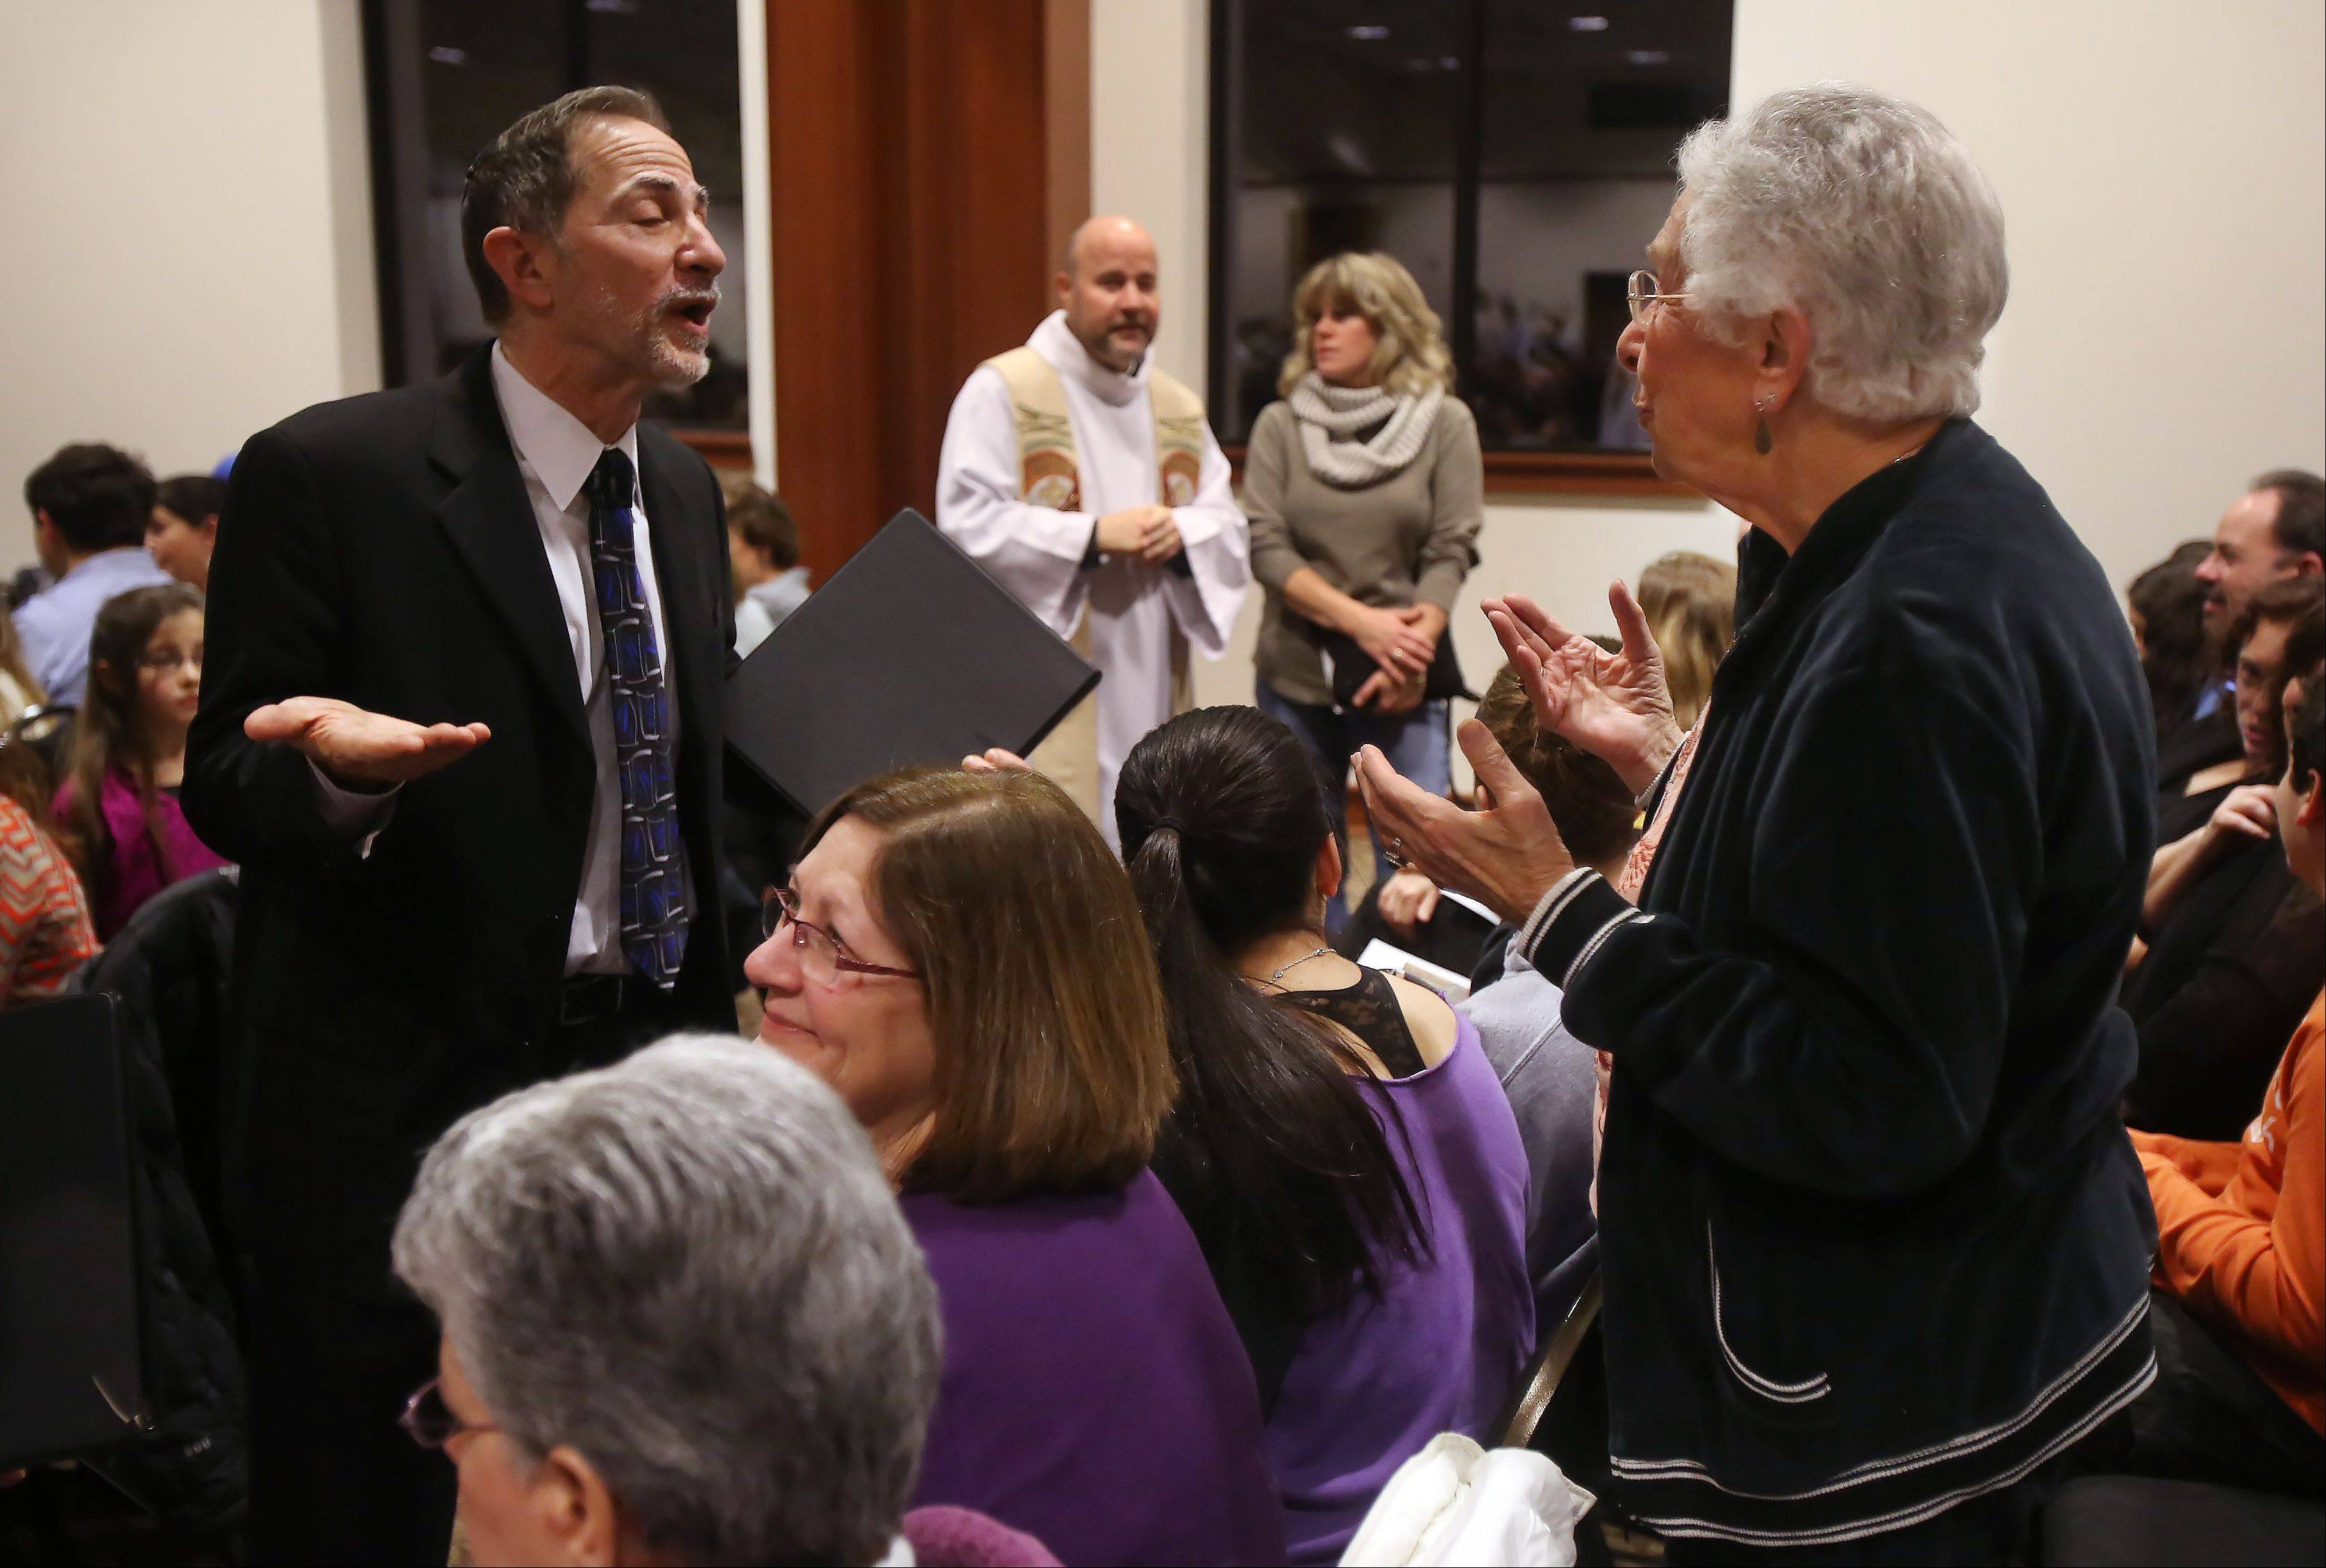 Congregation Beth Judea Cantor Roger Weisberg, left, talks with Paulette Kallow before the Interfaith Thanksgiving Celebration on Sunday night at Temple Chai in Buffalo Grove. Eight congregations of the Northwest Suburban Interfaith Council held a united service for a congregation of more than 800. In the background is Rev. Dan Whiteside of Saint Mary Catholic Church.